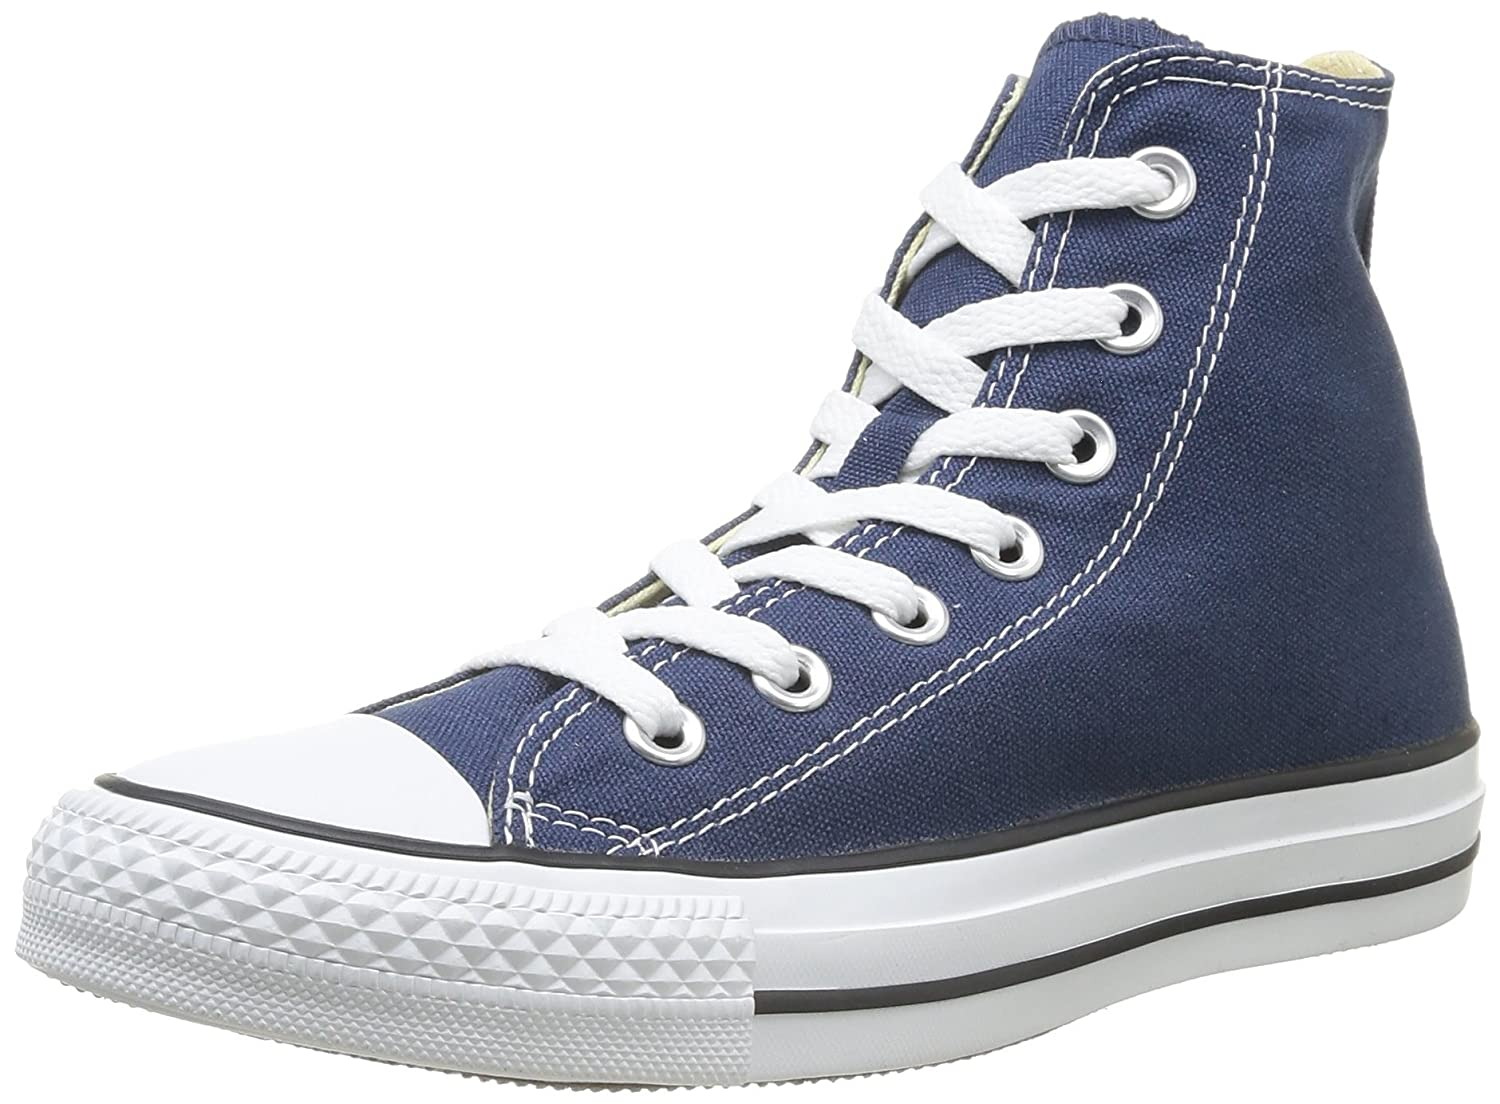 Converse Chuck Taylor All Star High Top Core Colors B01KROPTHC 5.5 D(M) US|Navy